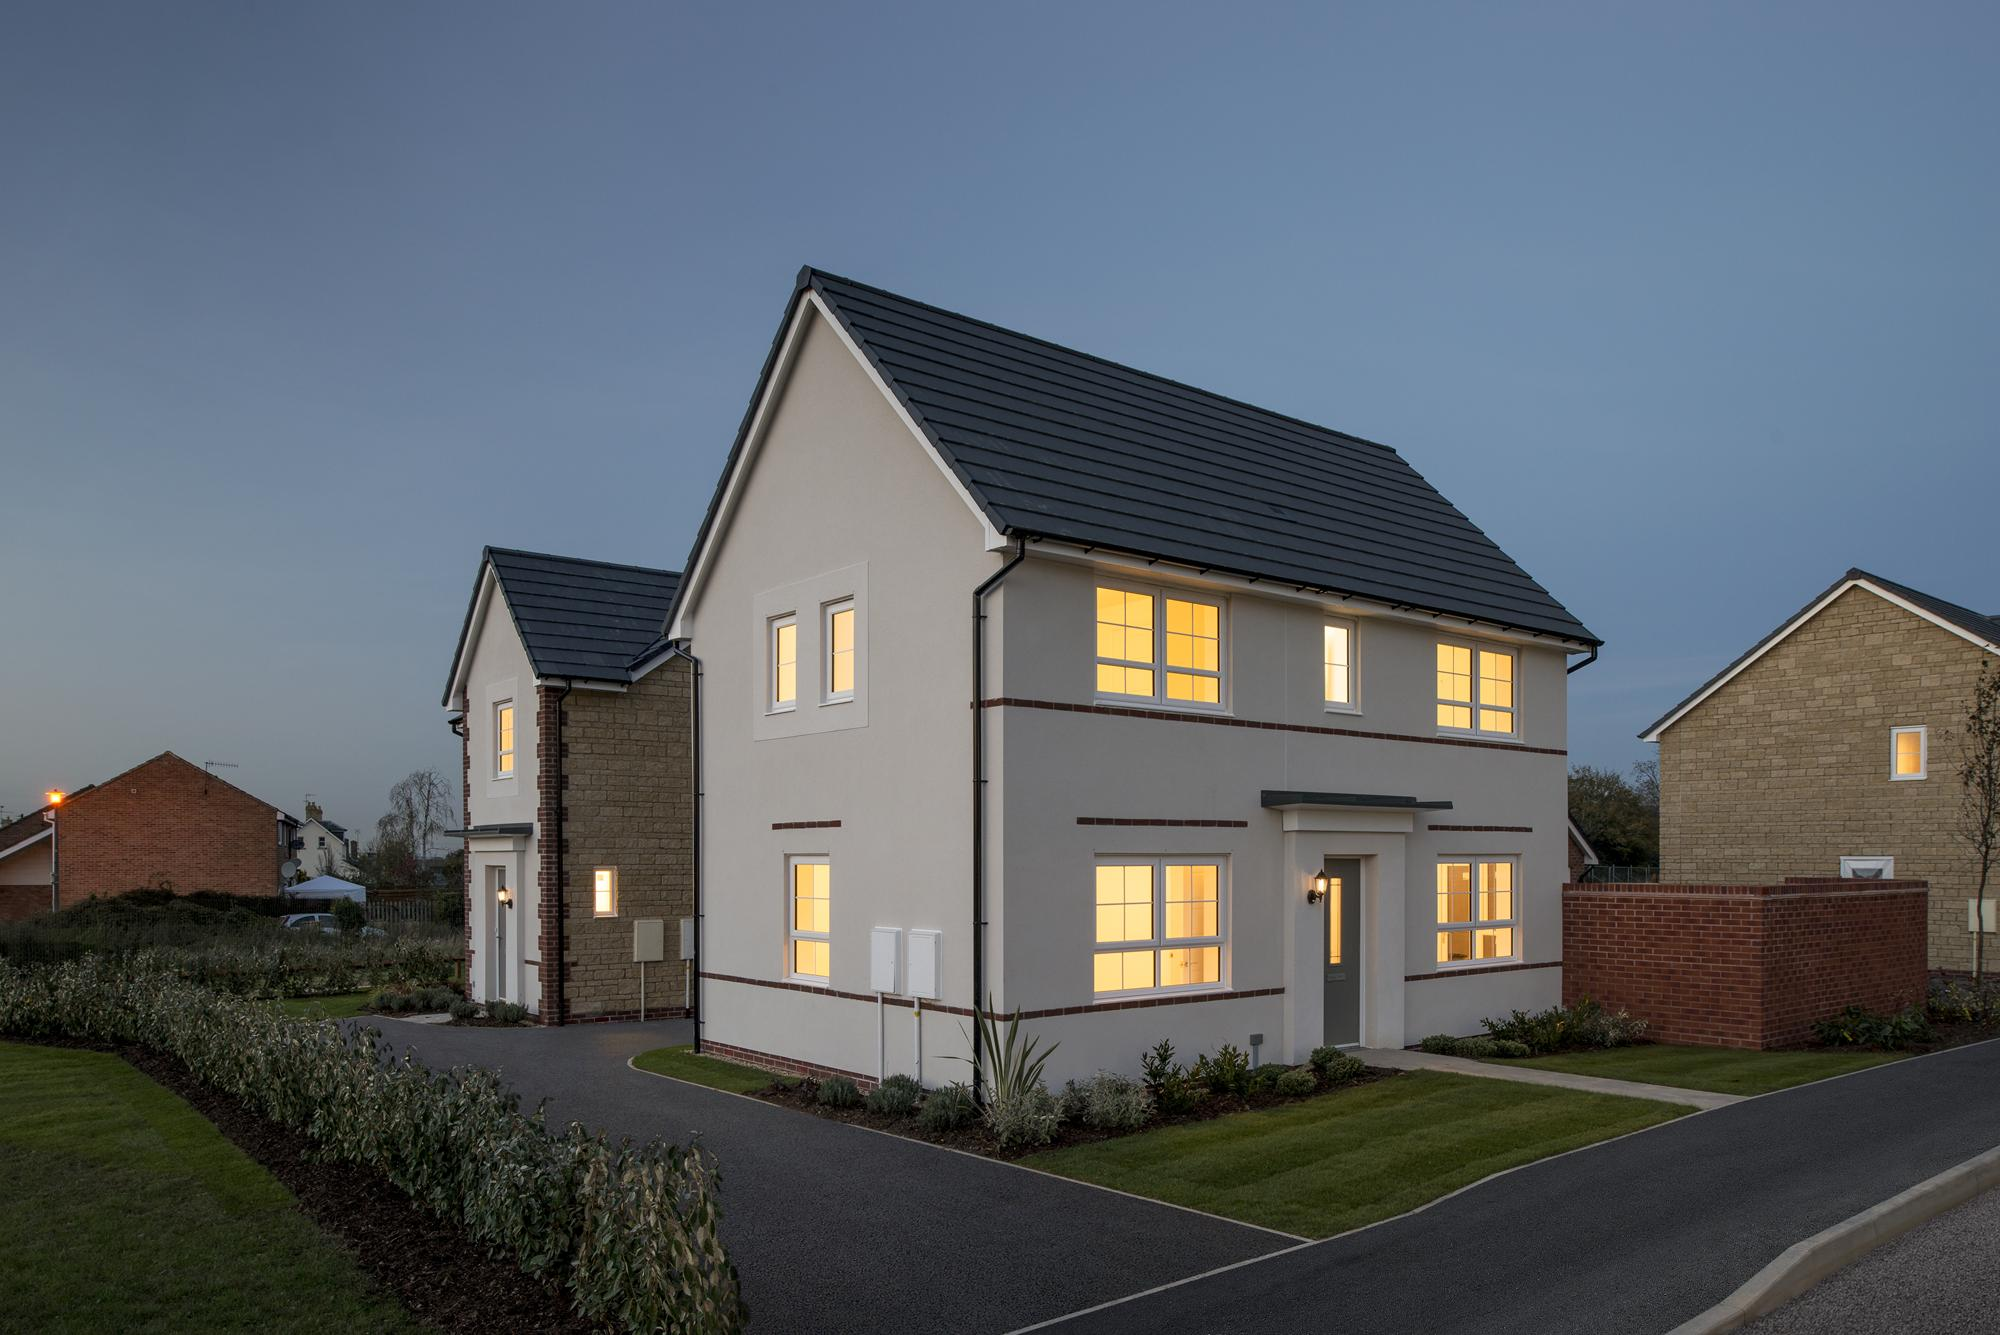 new homes for sale in leonard stanley at saxon gate barratt homes rh barratthomes co uk buy new home no deposit